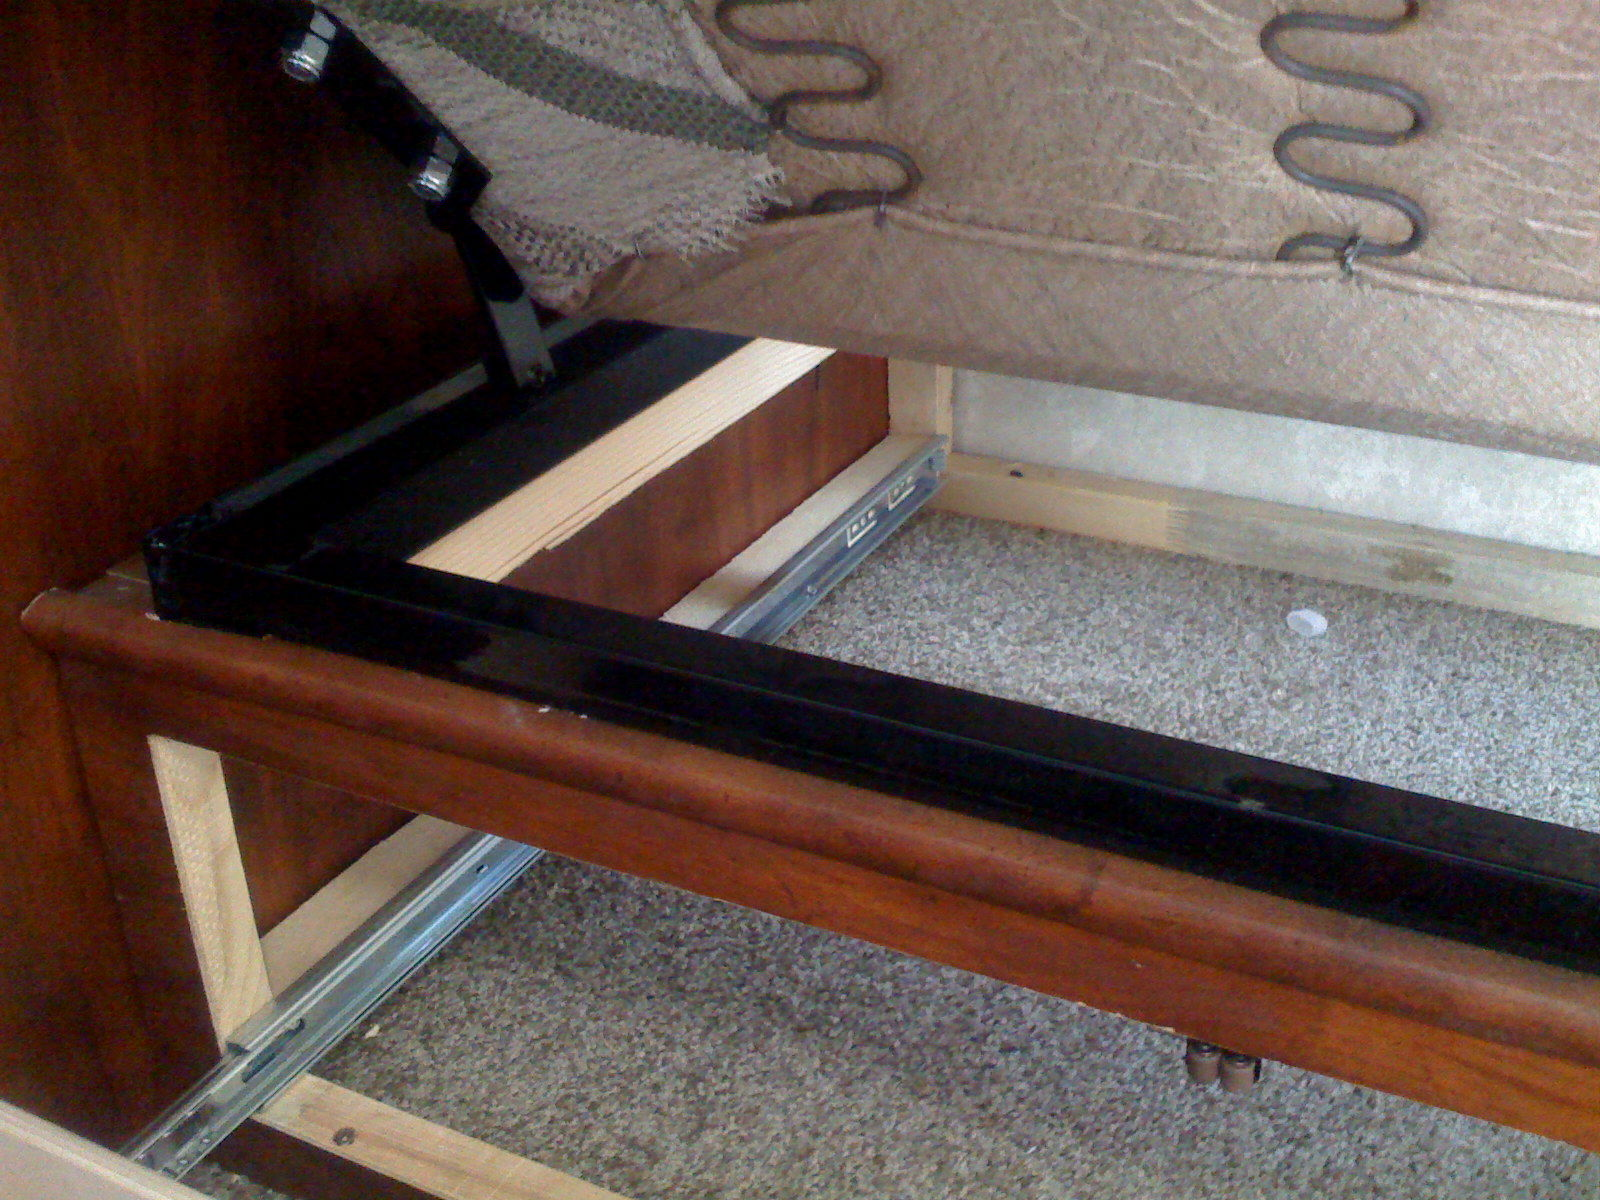 finest sofa bed craigslist picture-Beautiful sofa Bed Craigslist Layout